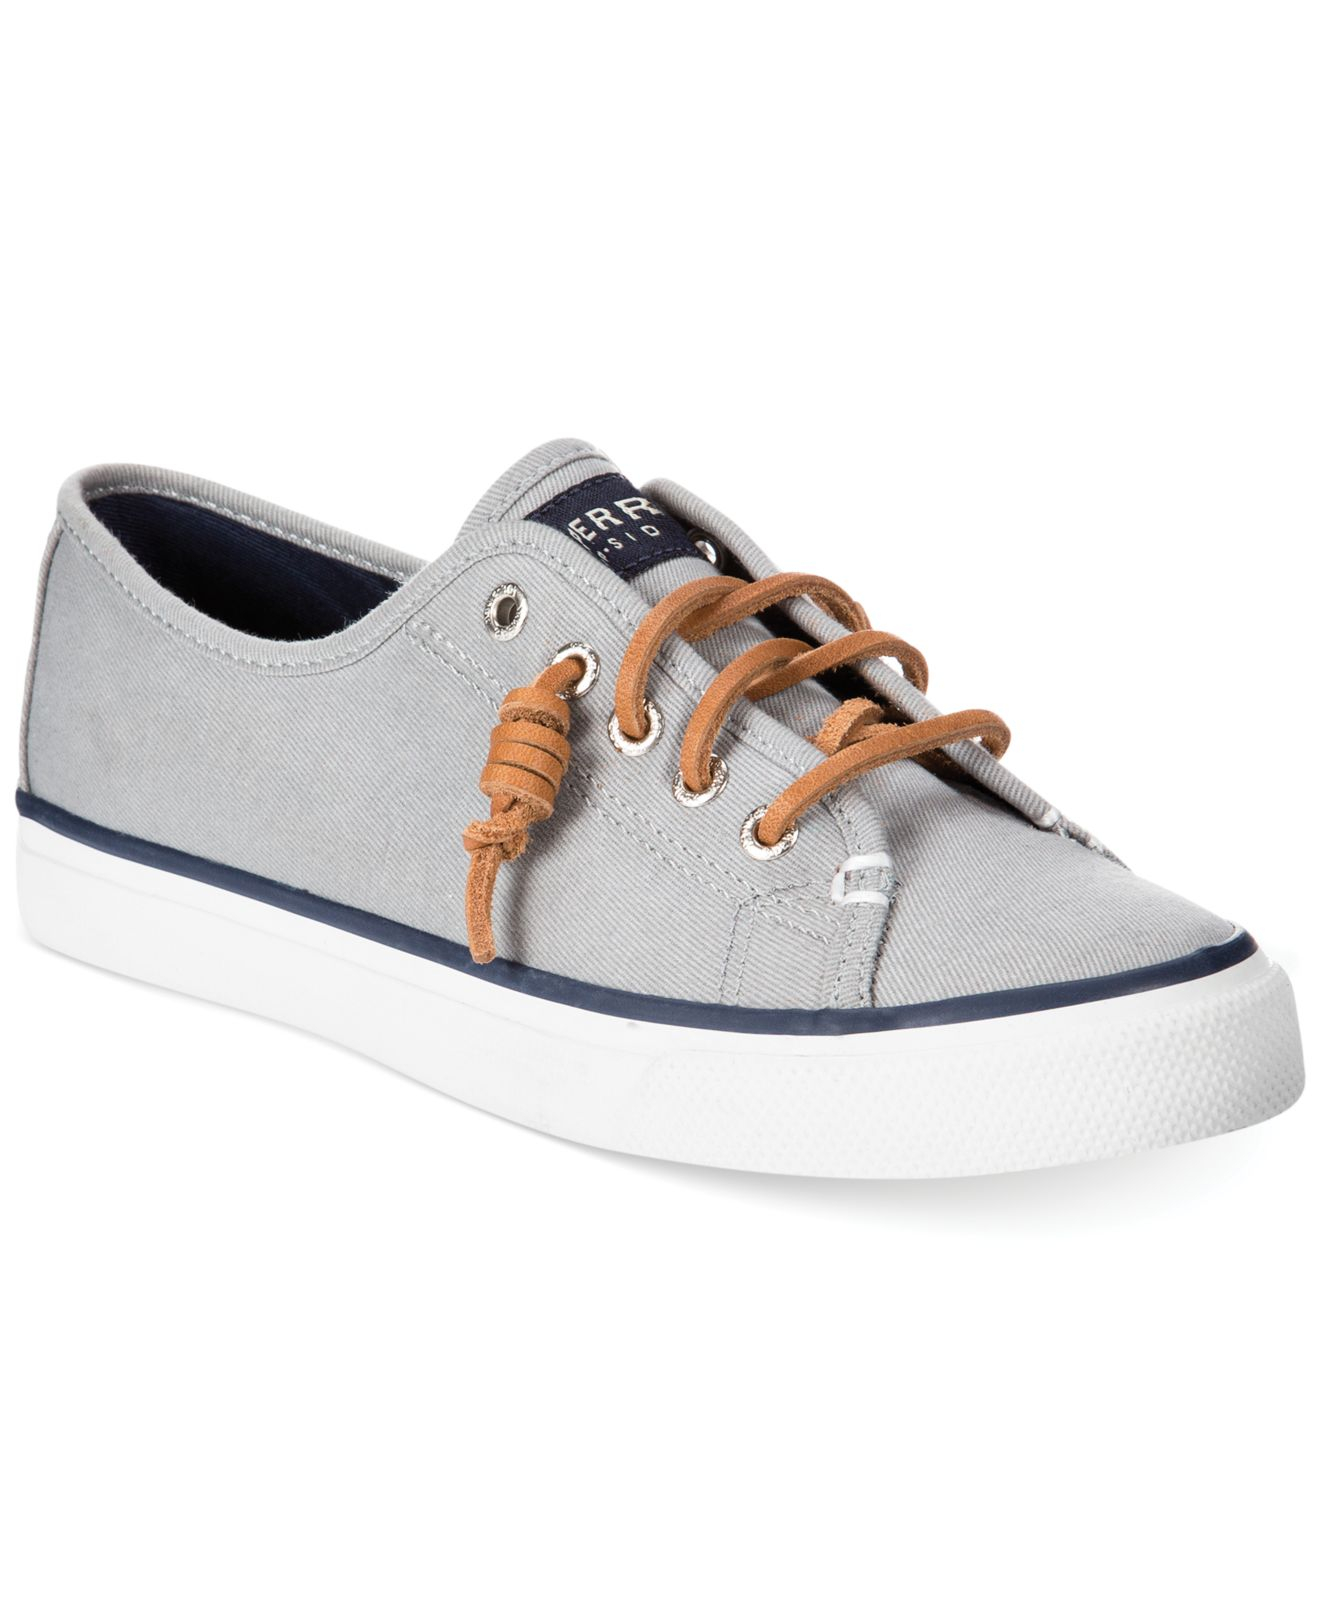 Macy S Sperry Womens Shoes